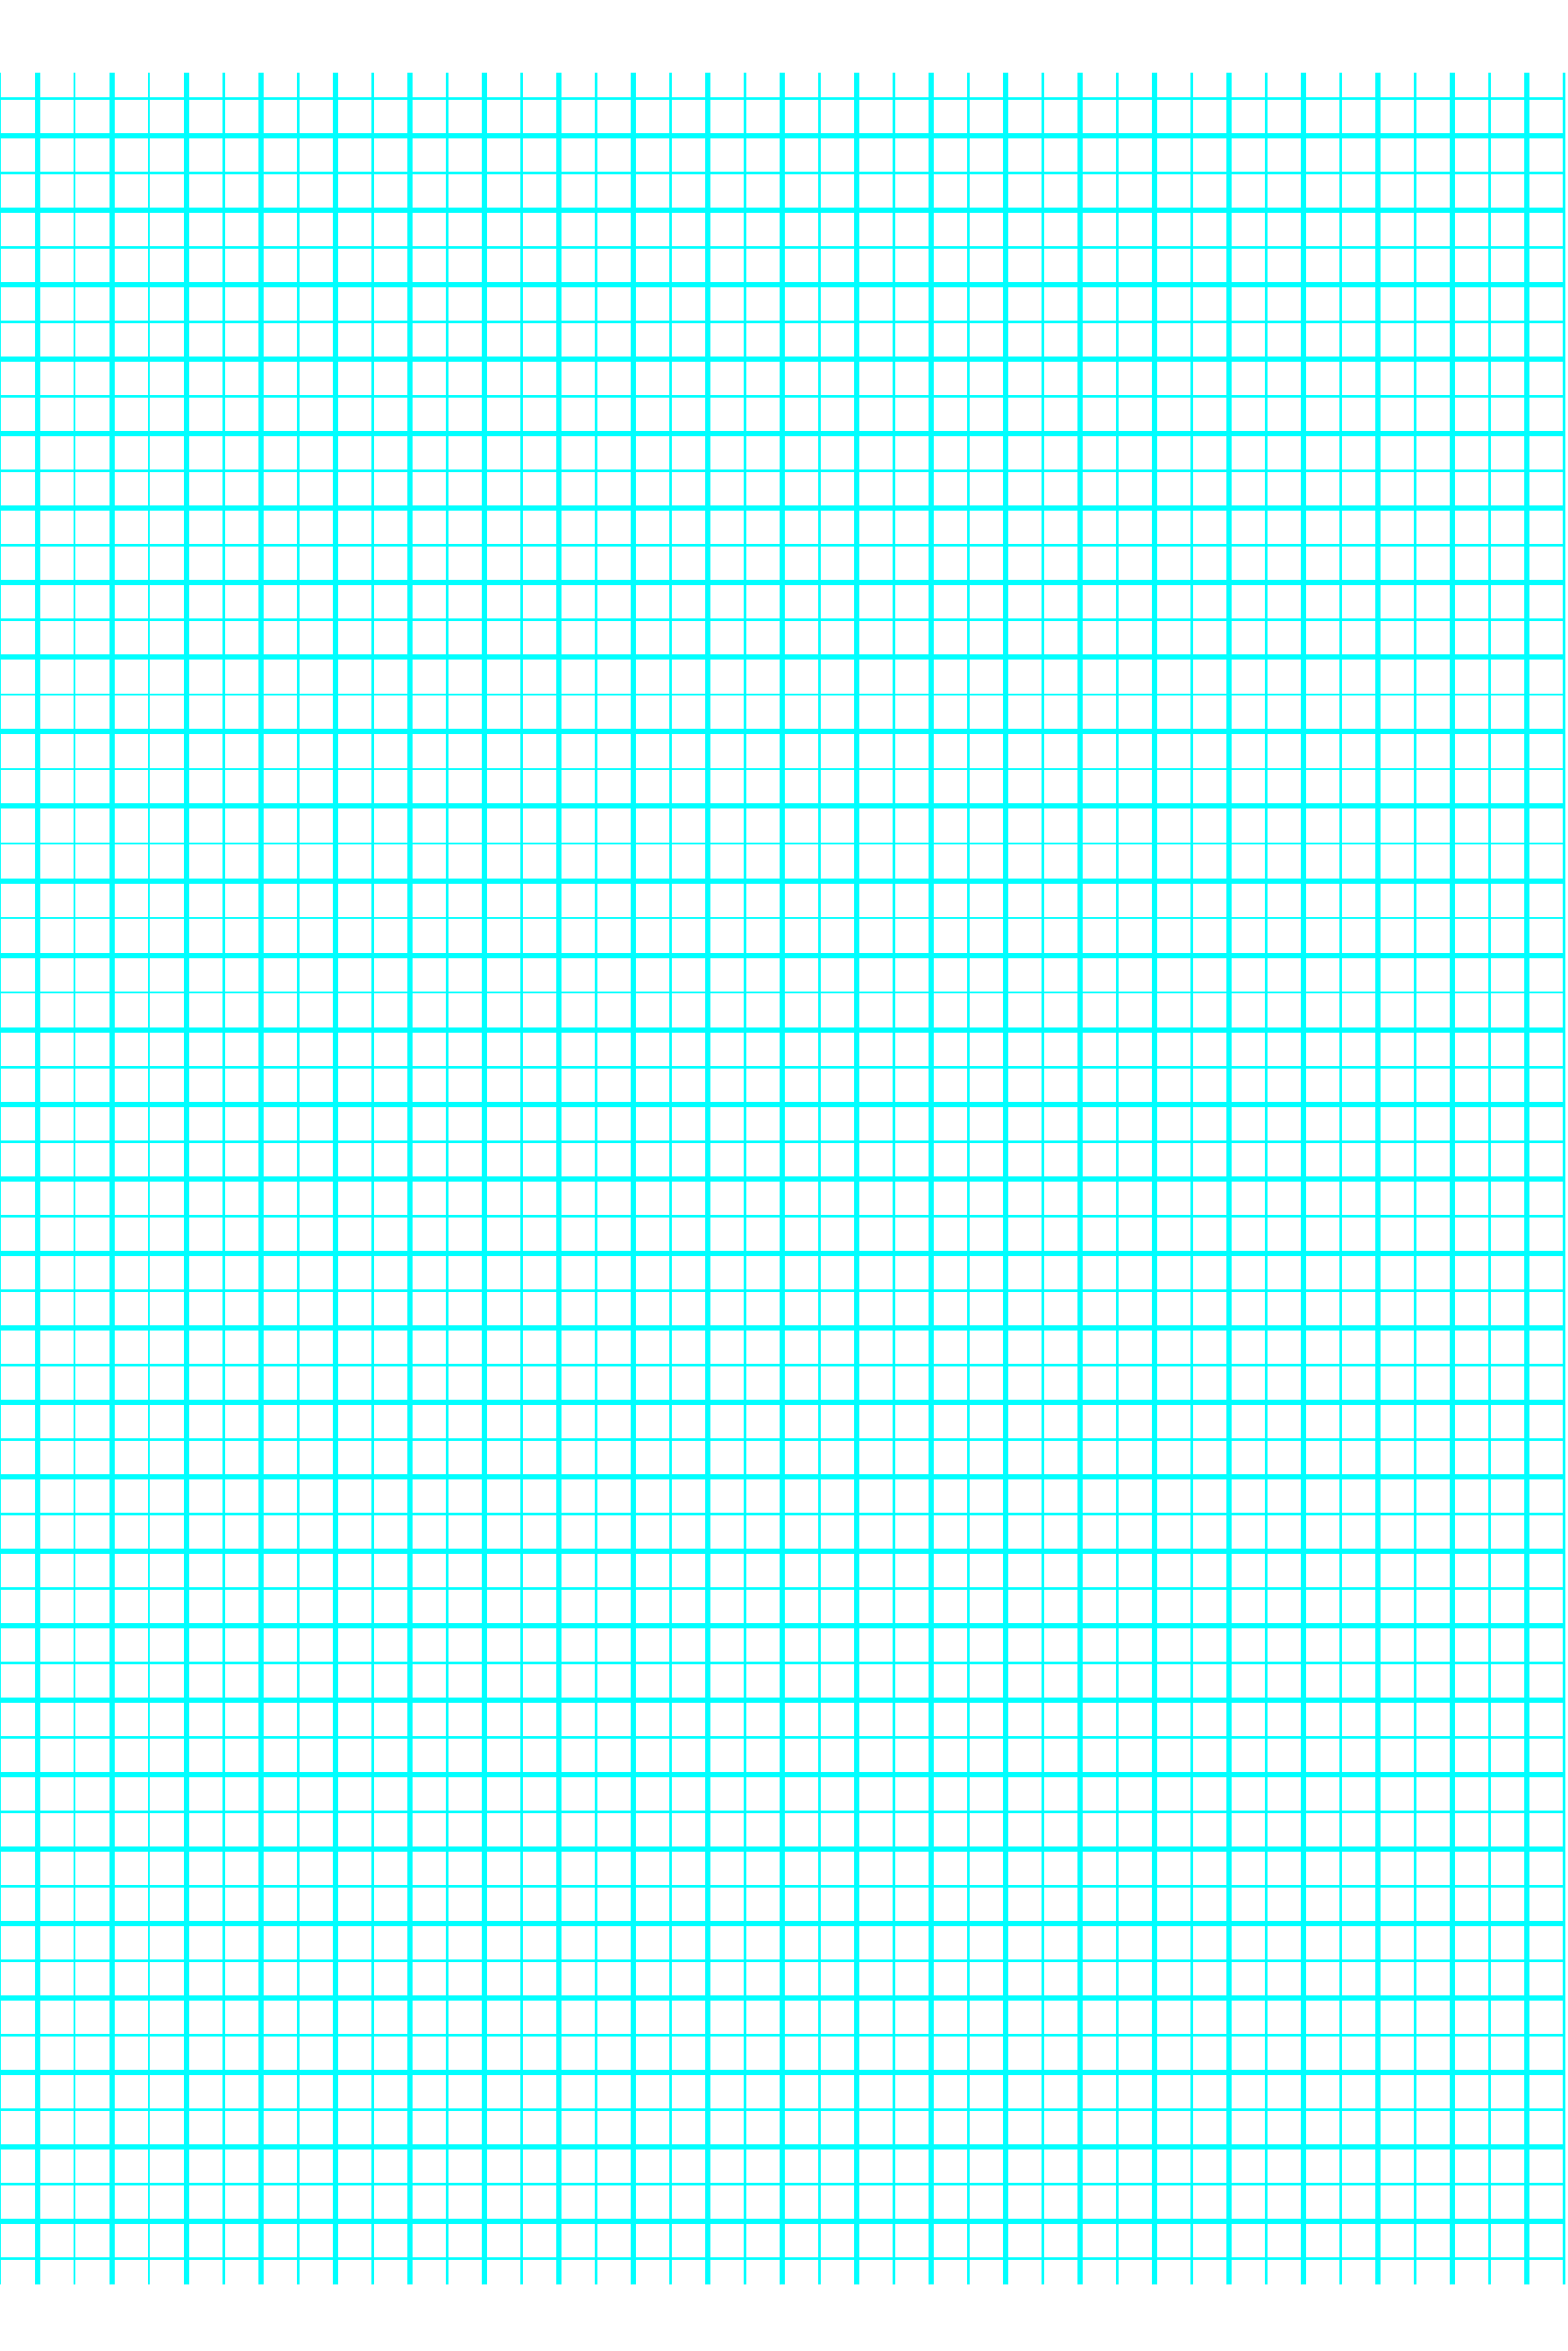 1 line per 5 mm graph paper on a4 paper  centimeter  free download